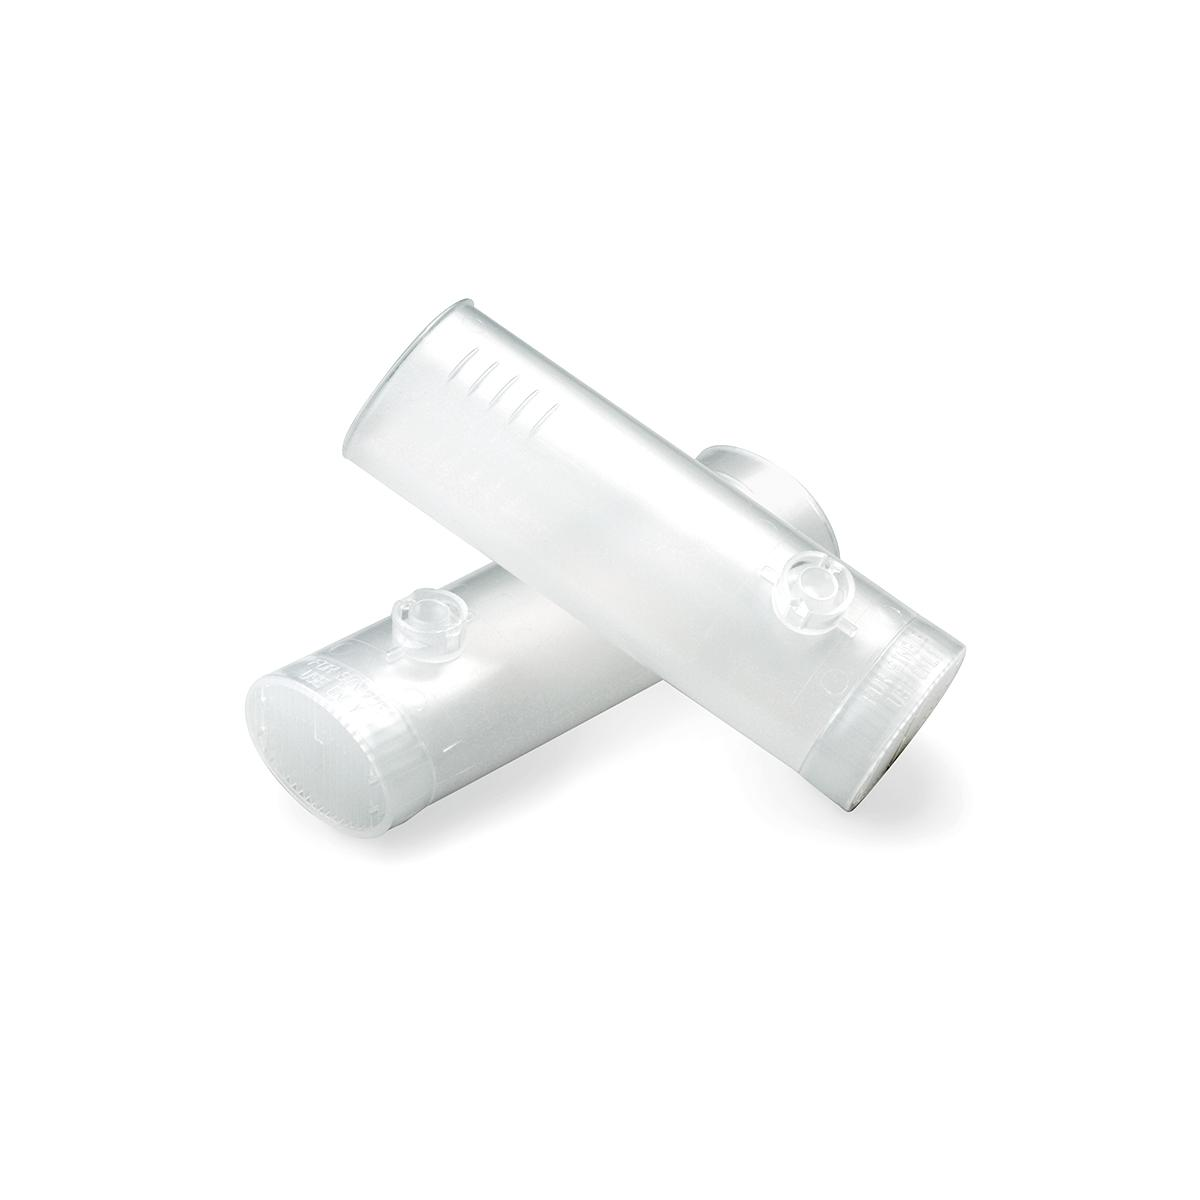 Clear plastic, cylindrical, disposable flow transducers for the Welch Allyn SpiroPerfect PC-Based Spirometer.